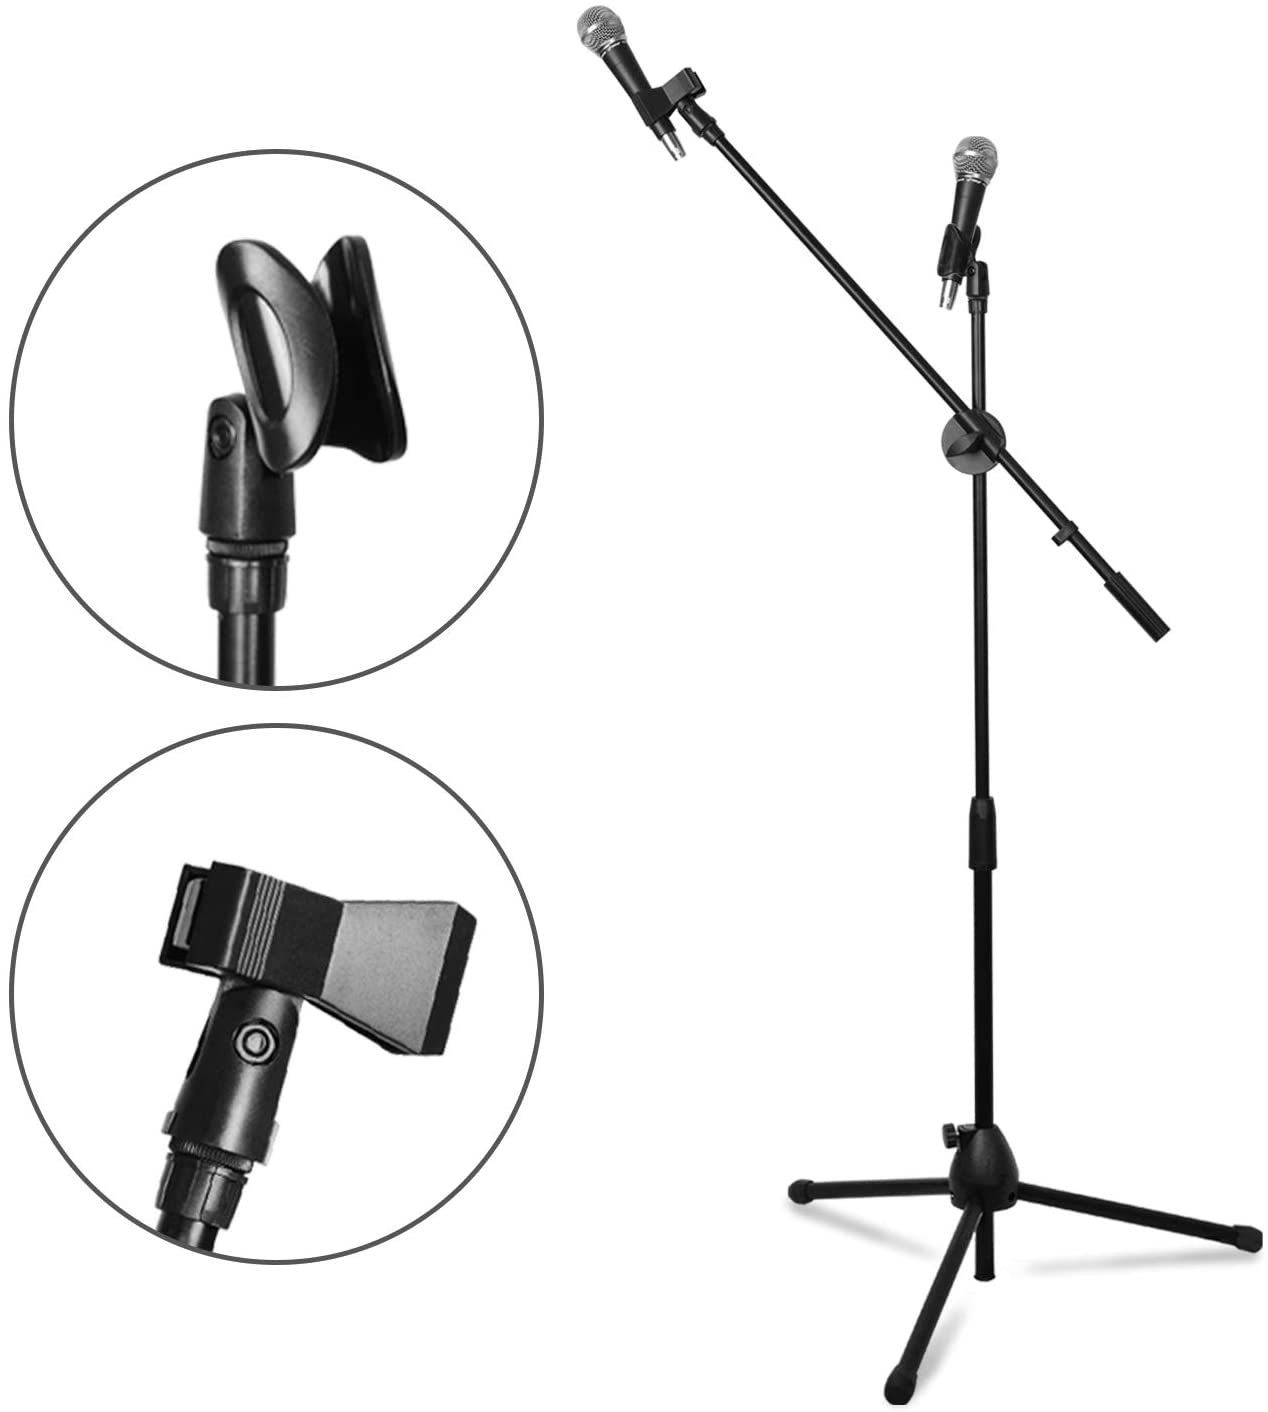 LIMO MUSIC Adjustable and Collapsible Microphone Stand Black, Max 52